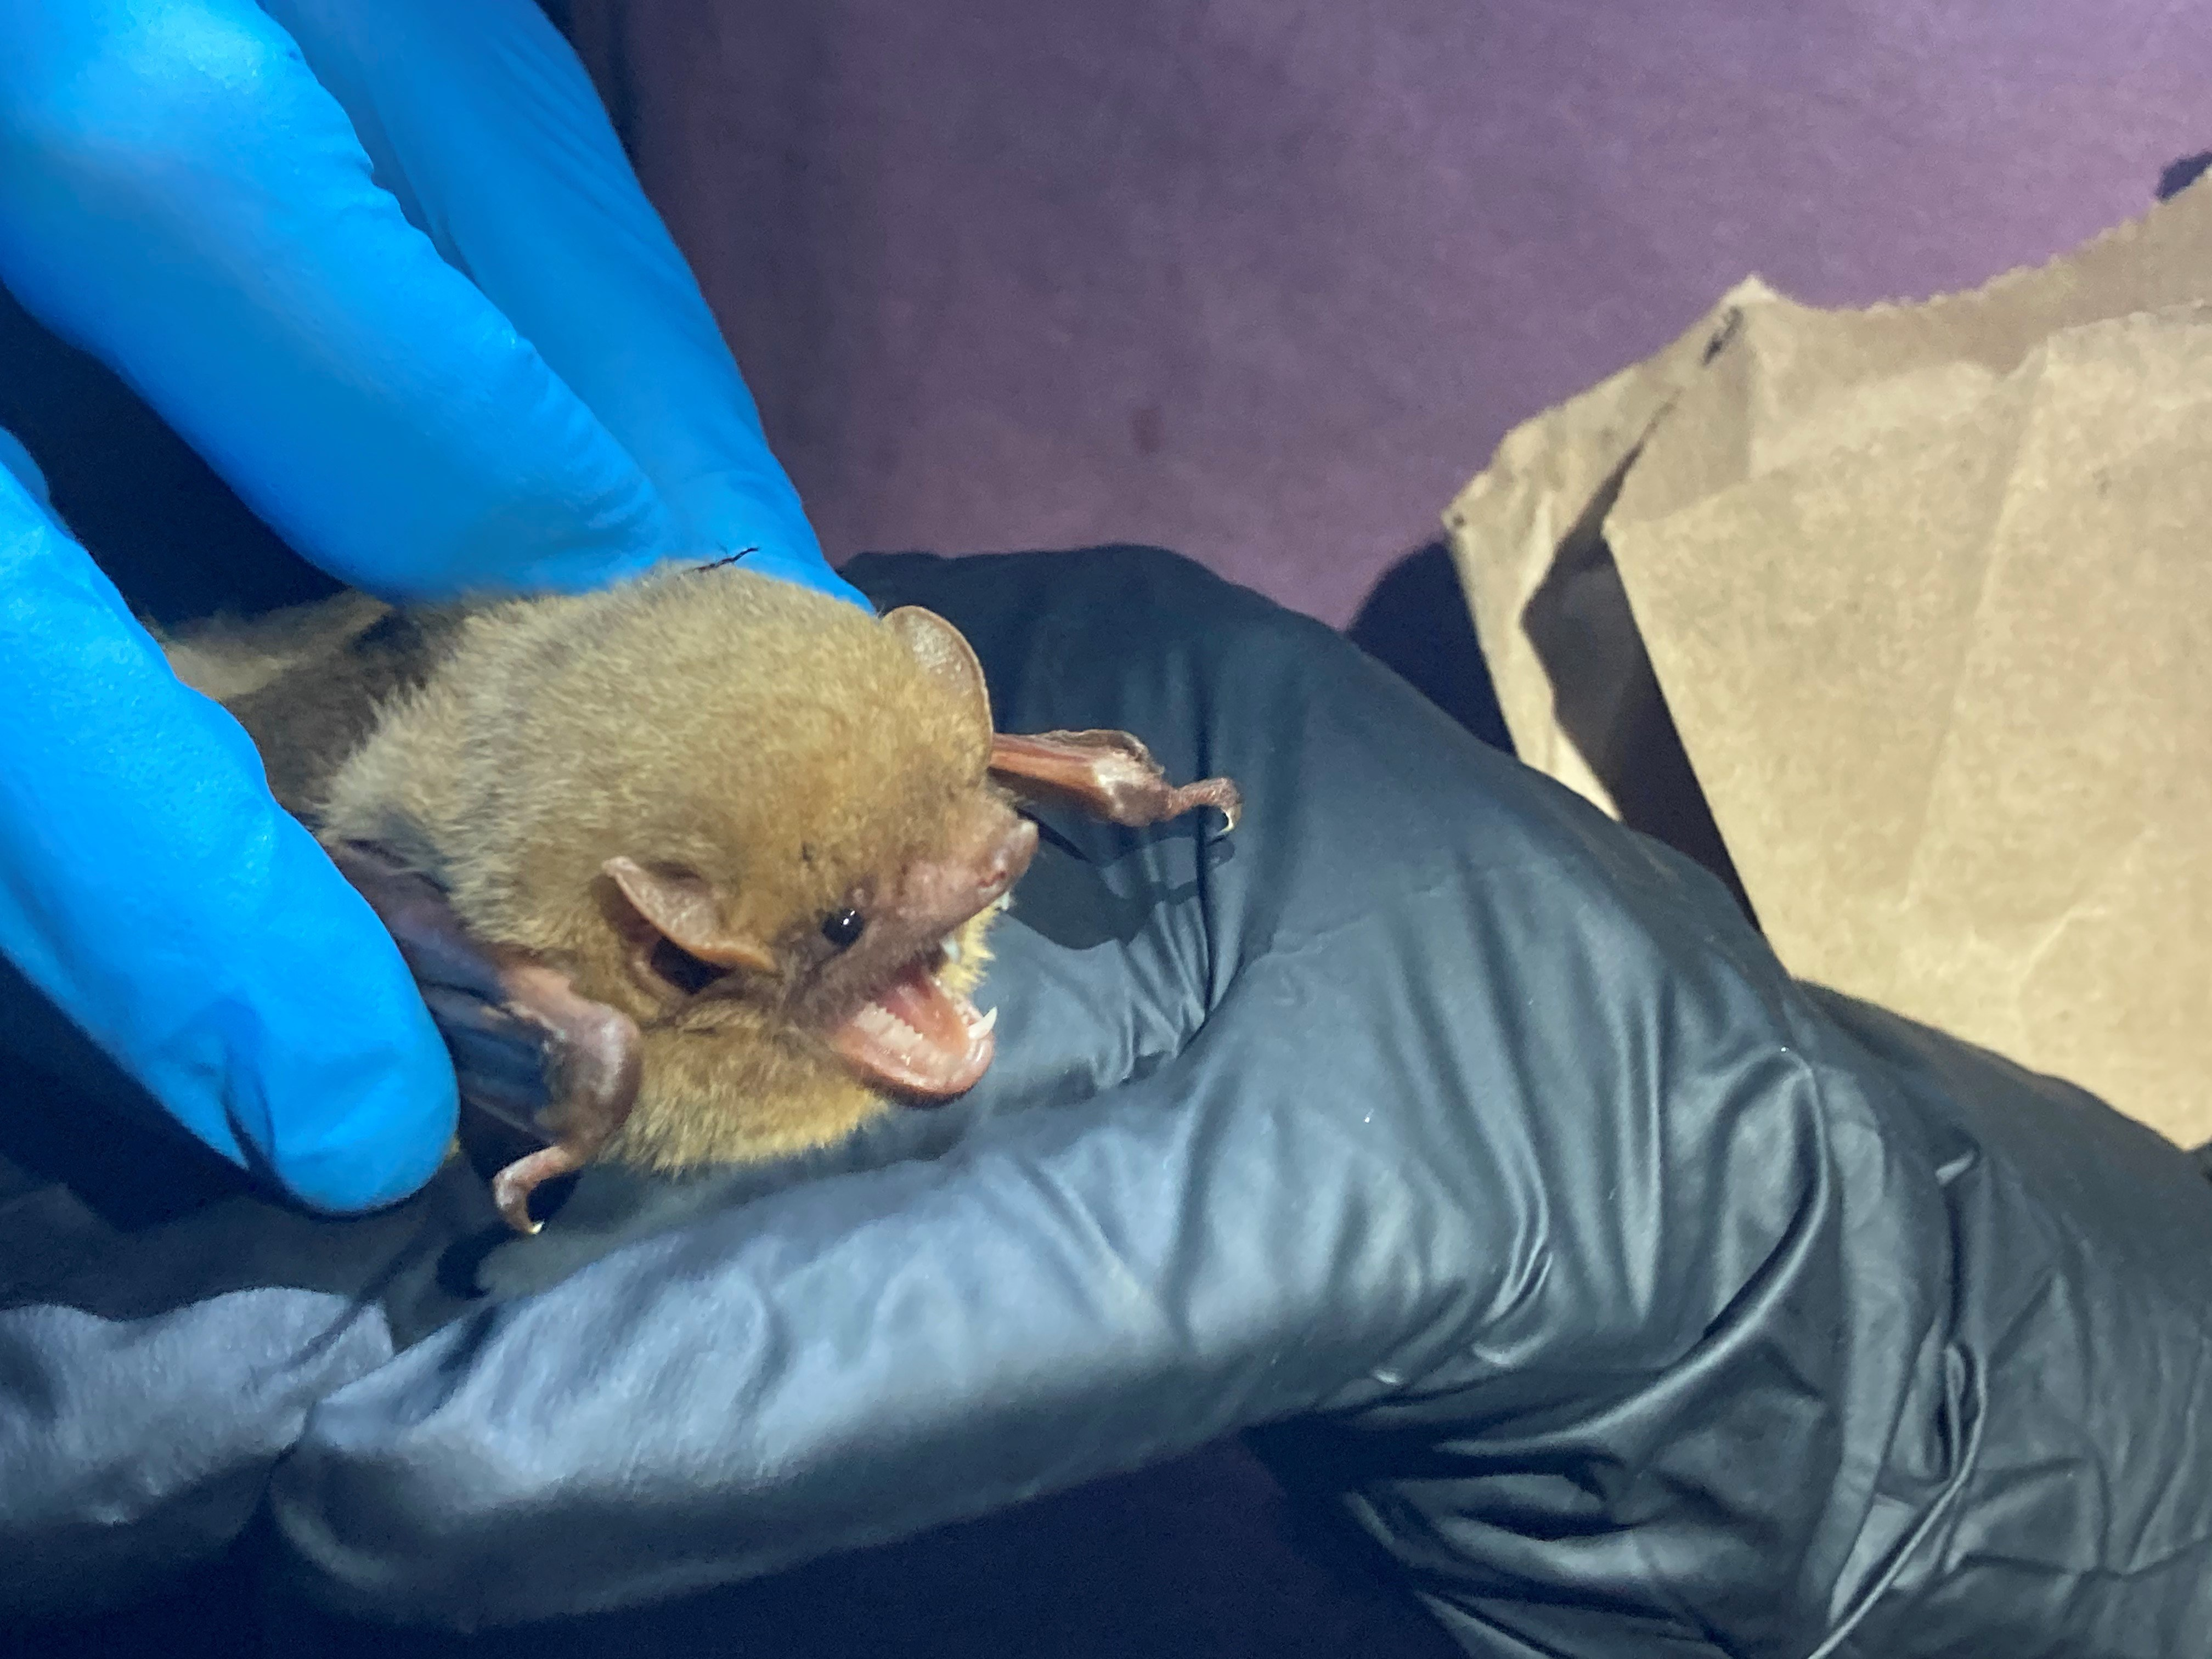 Northern yellow bats are a coastal species that roost in Spanish moss and in dead palmetto fronds.